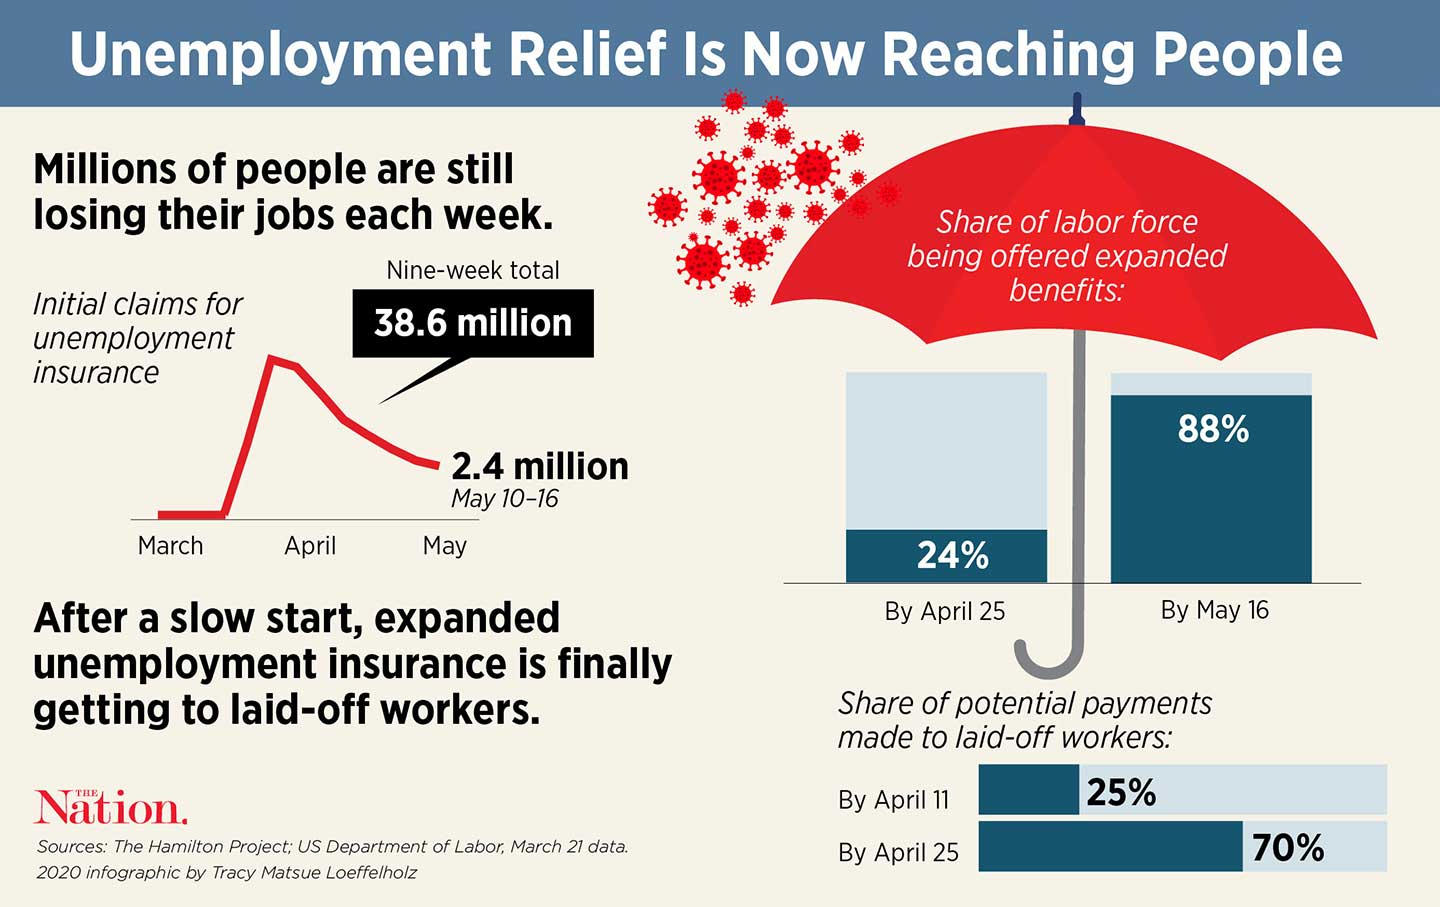 Unemployment Insurance Is a Vital Part of Economic Freedom